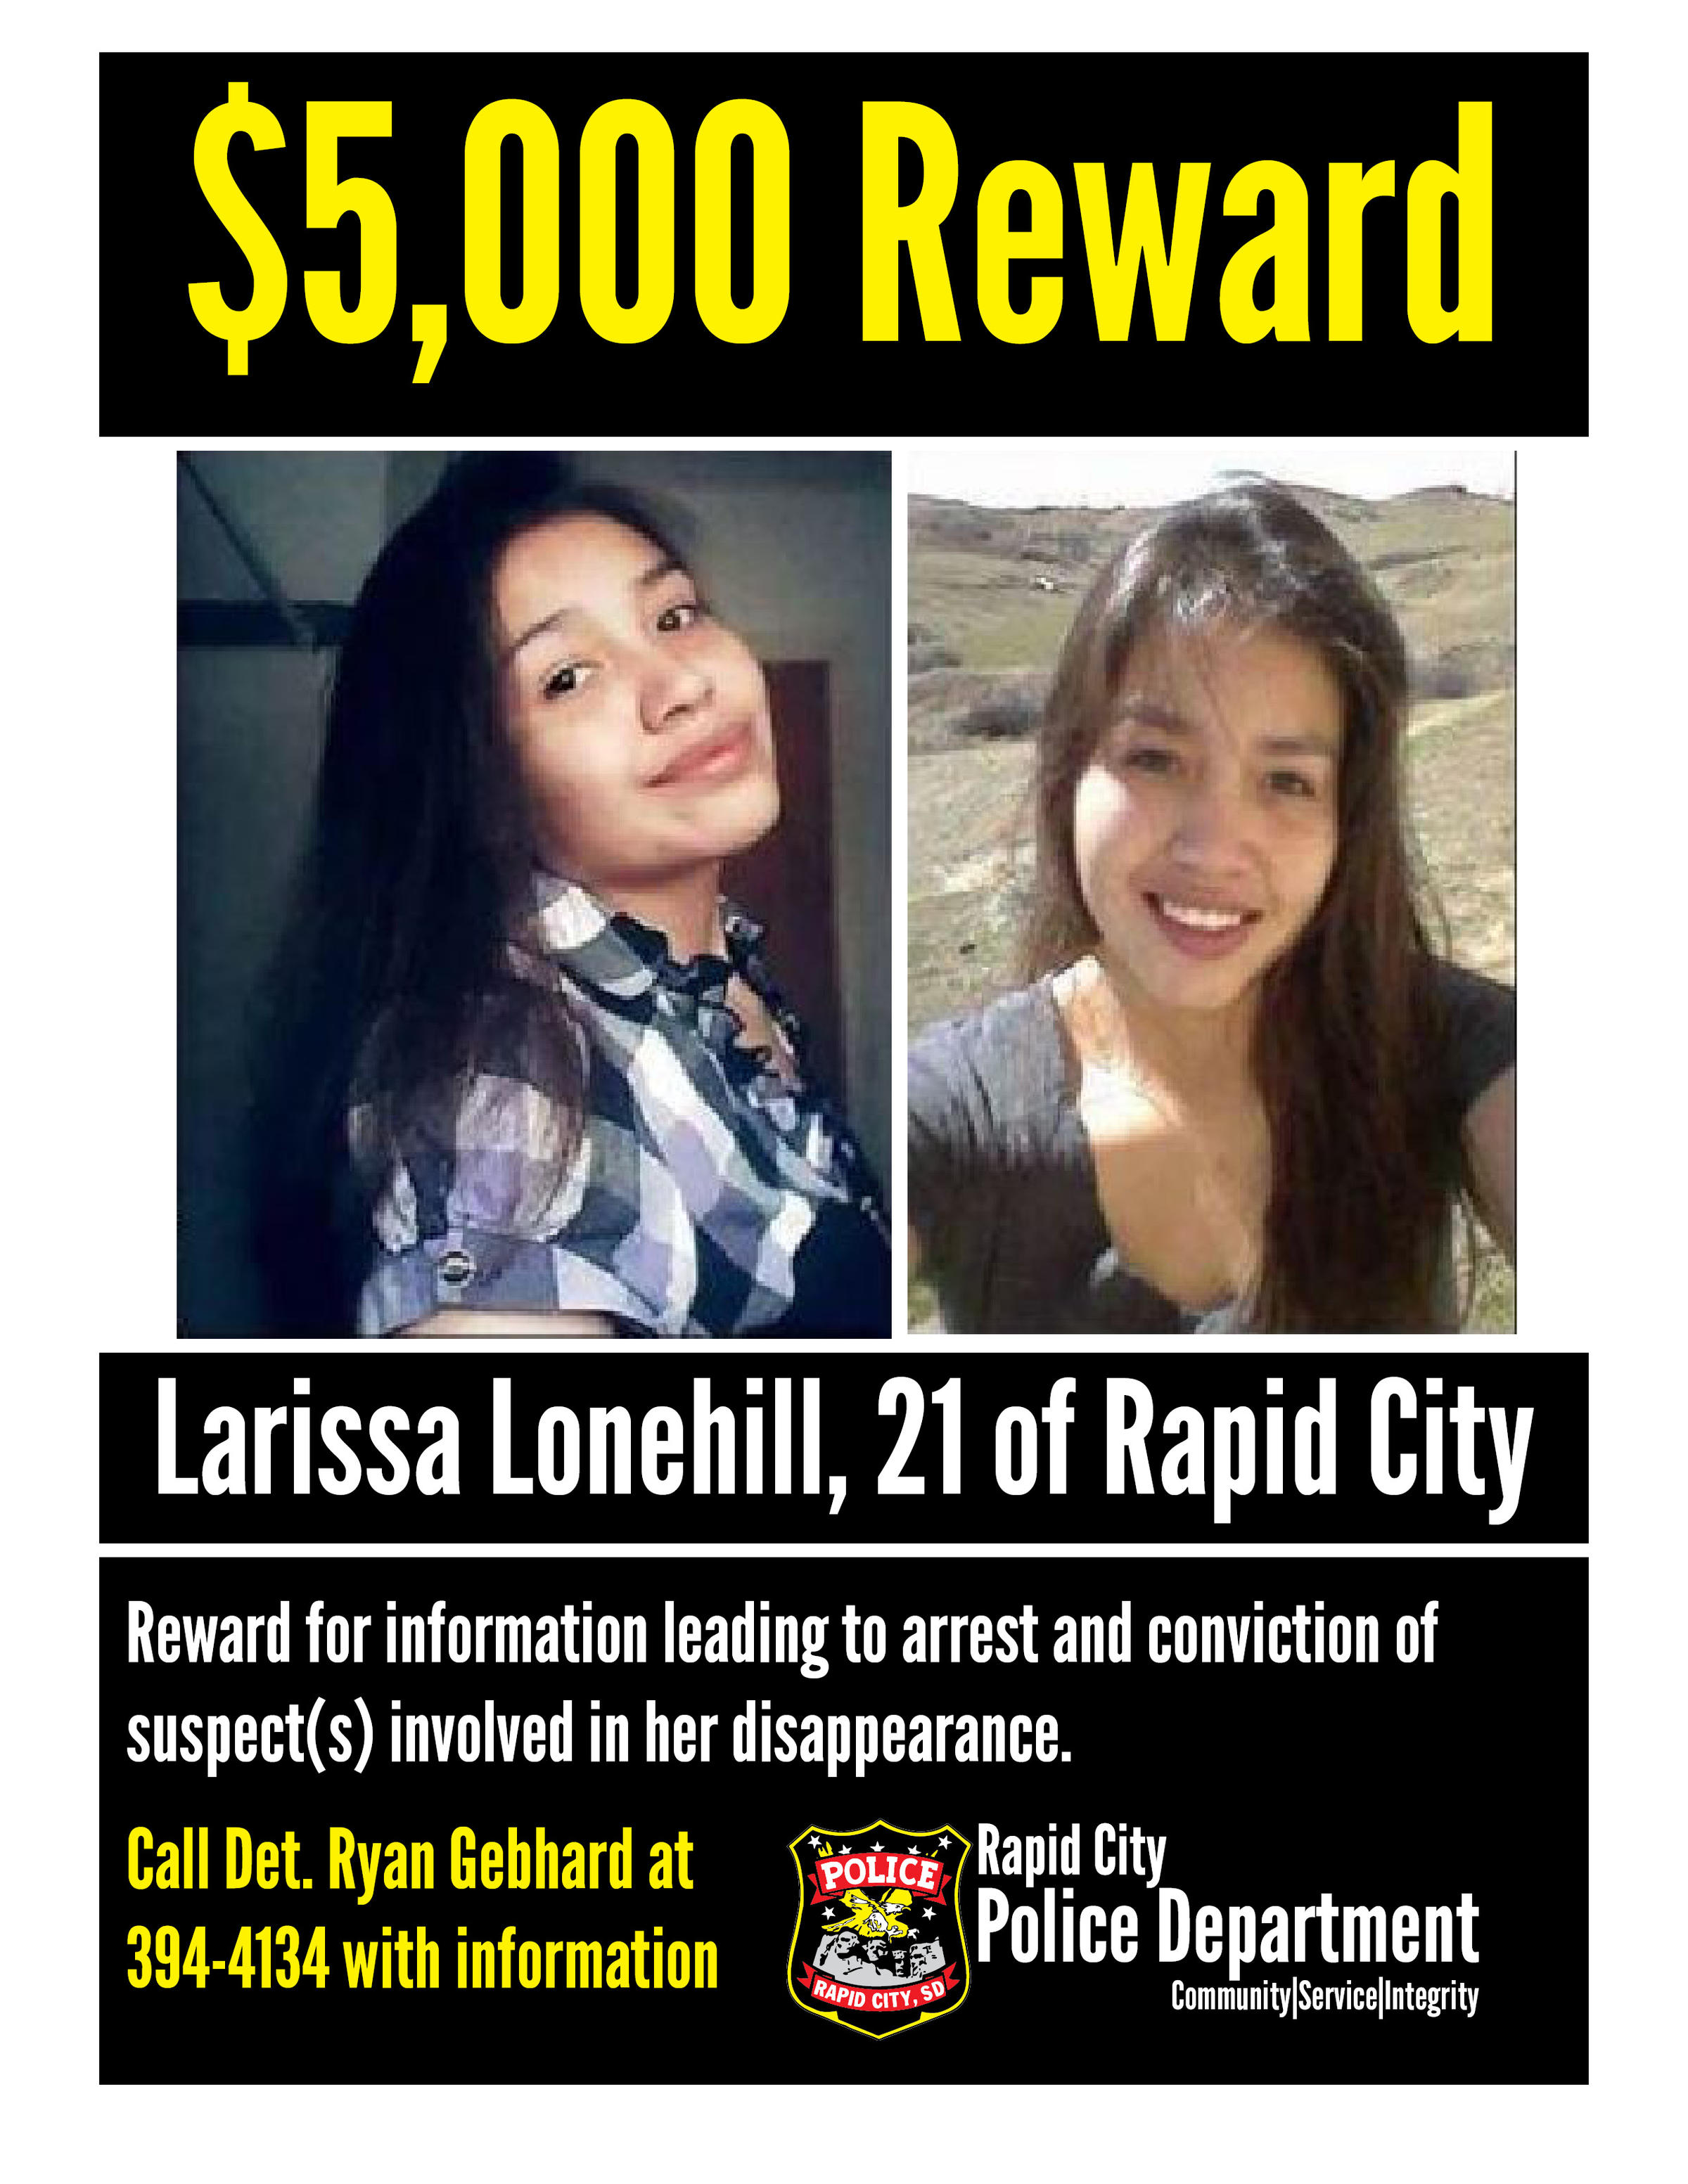 RCPD Offers $5,000 Reward For Assistance In Missing Person Investigation  Missing Person Flyer